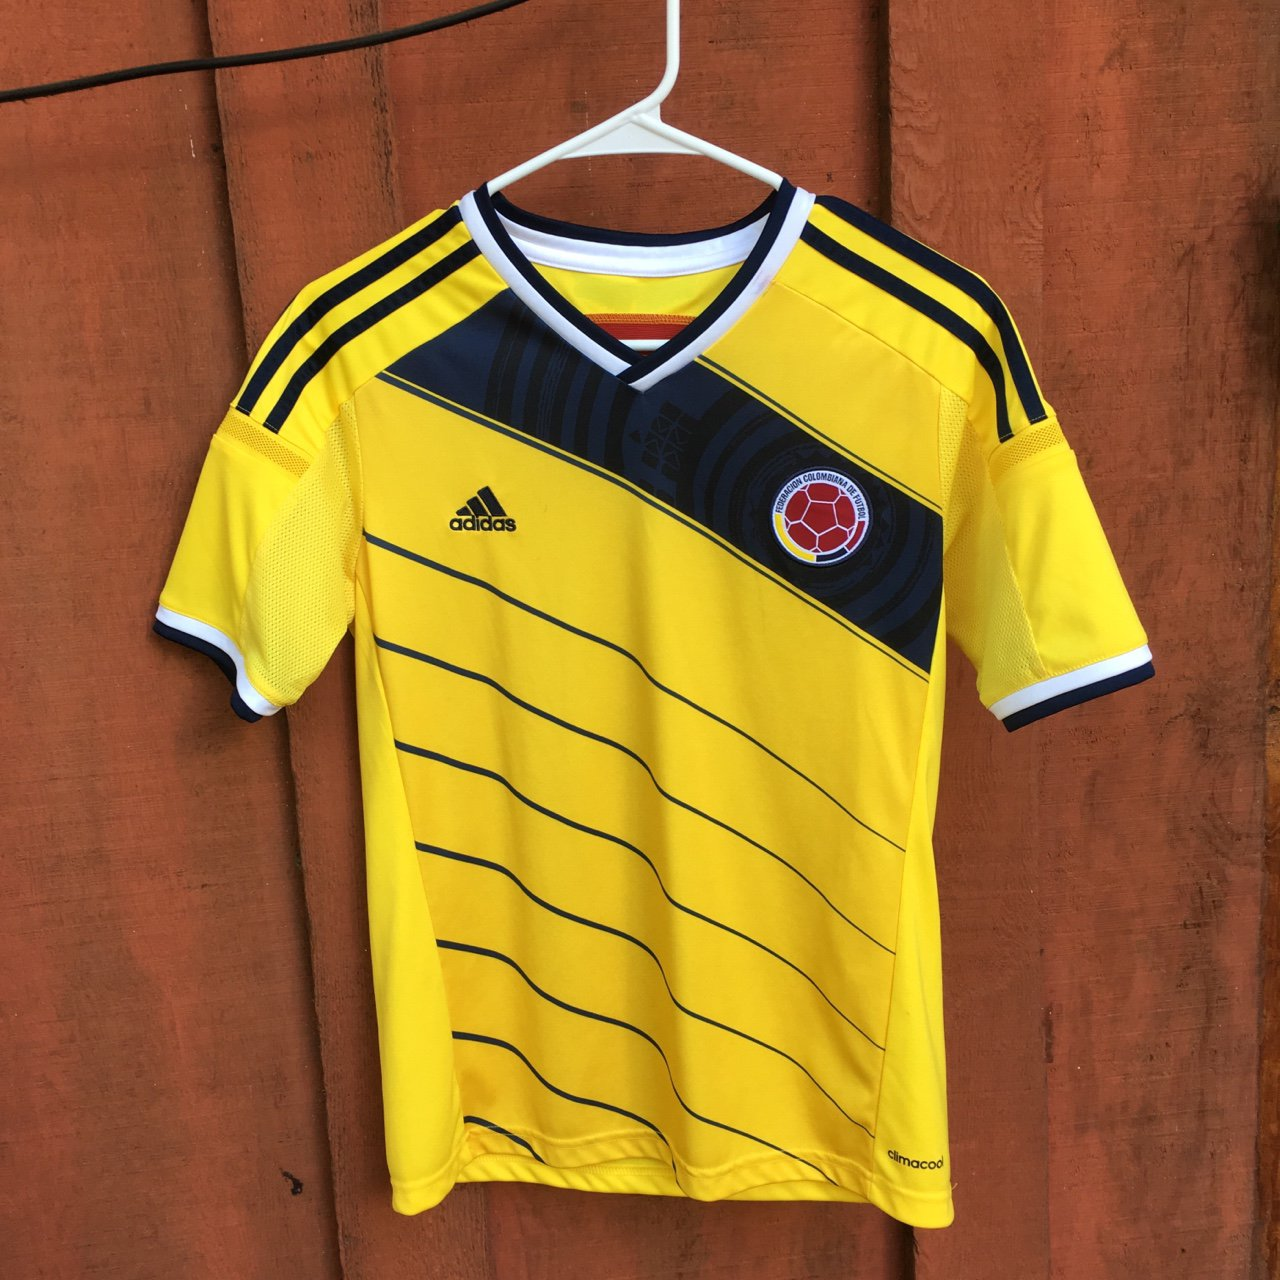 9232d6cbf0d @vansgmz. 2 months ago. California, USA. Real Replica 2014 Colombia World  Cup Jersey ...